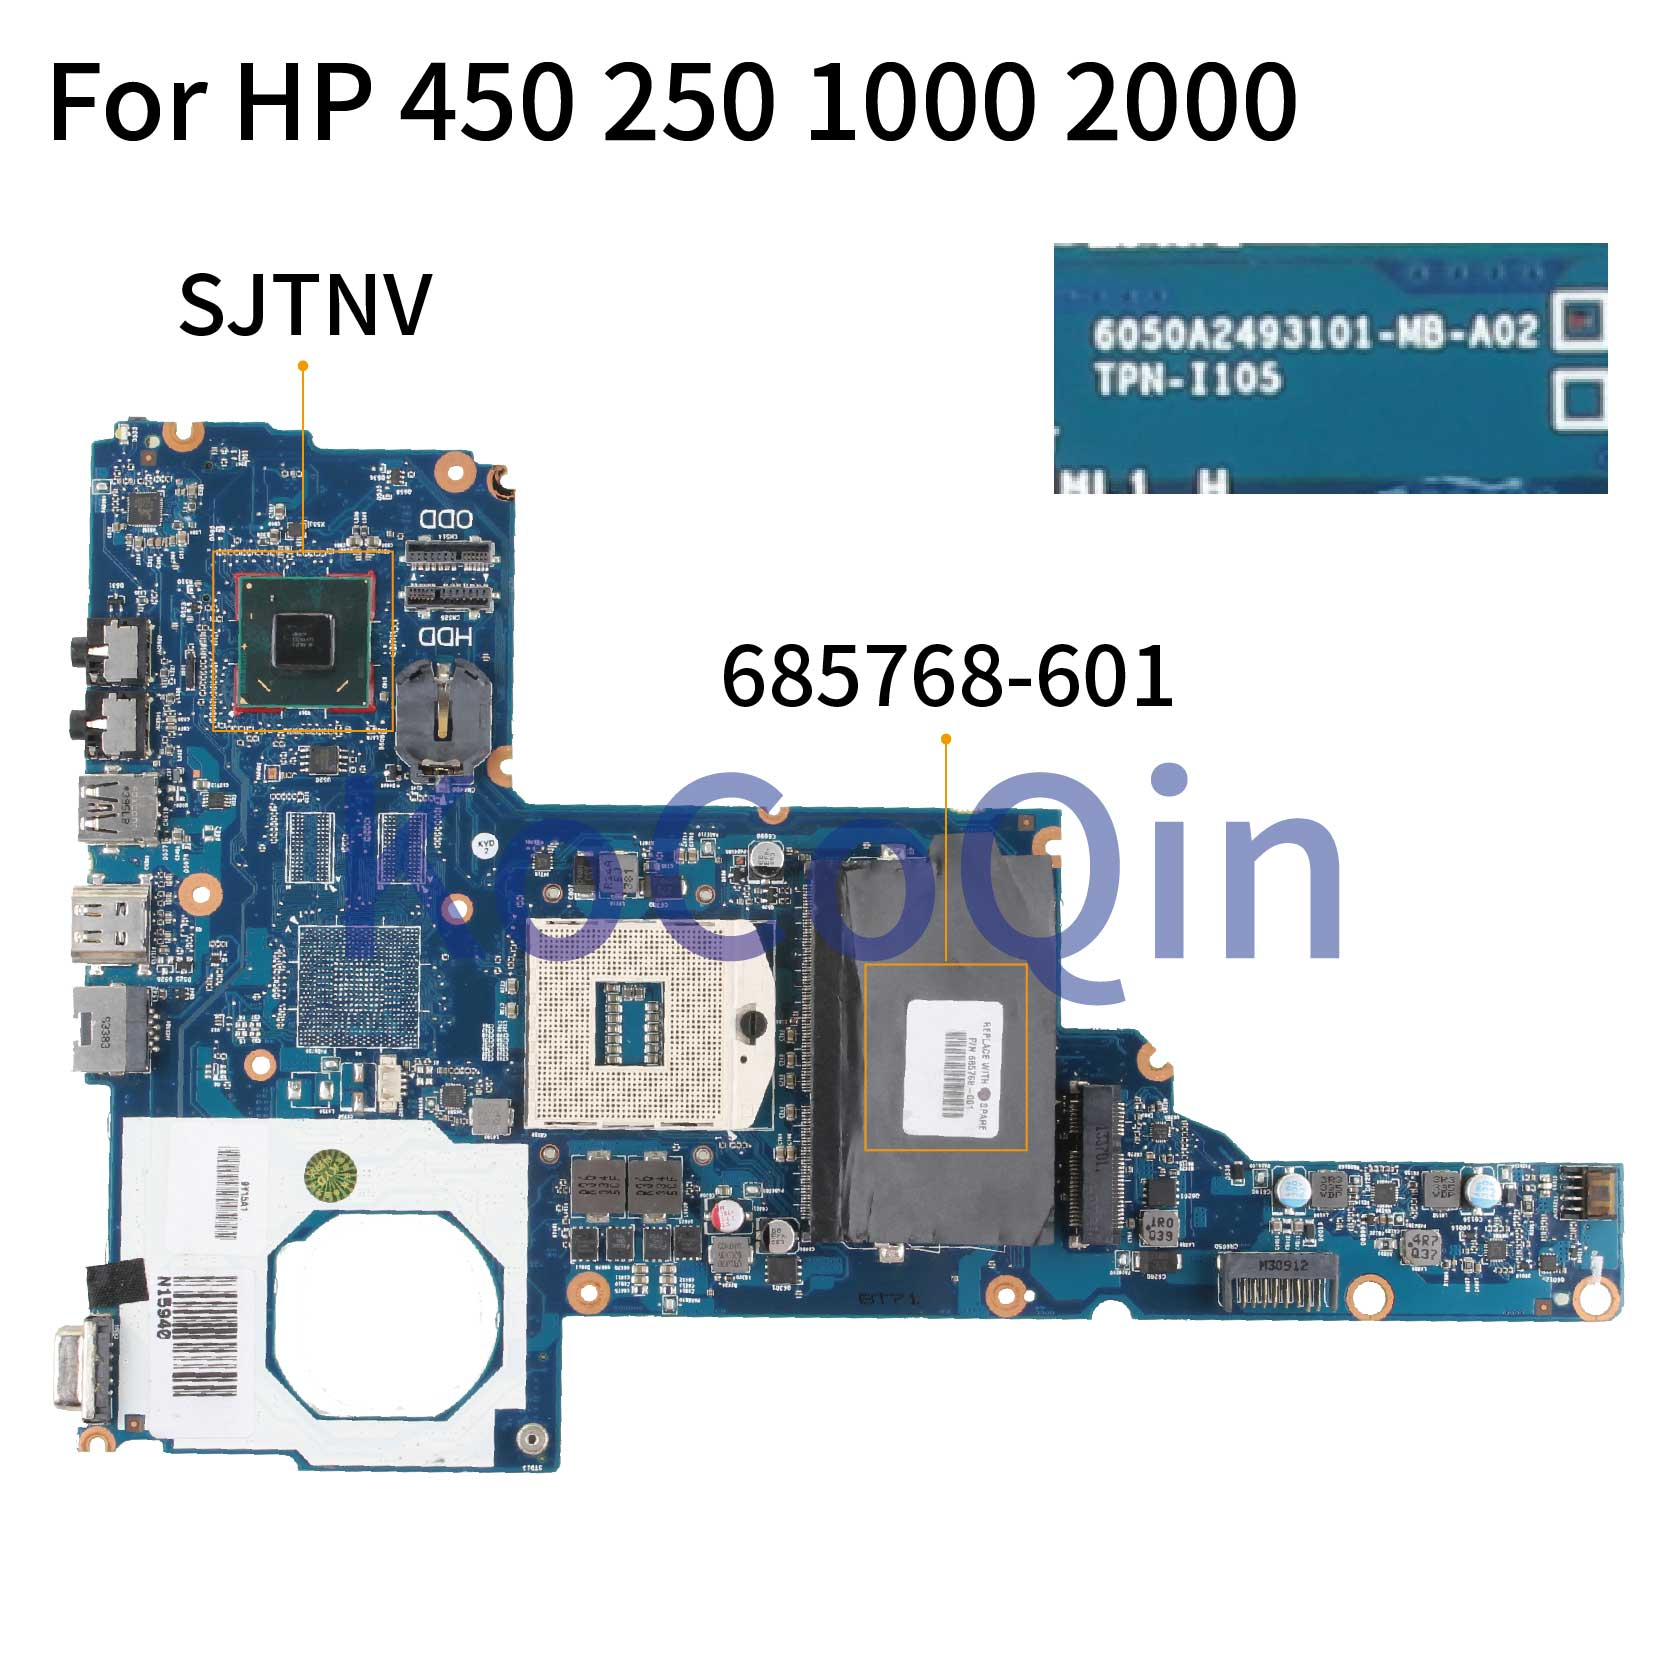 KoCoQin Laptop Motherboard For HP 450 250 1000 2000 HM70 Mainboard 685768-001 685768-601 6050A2493101-MB-A02 SJTNV